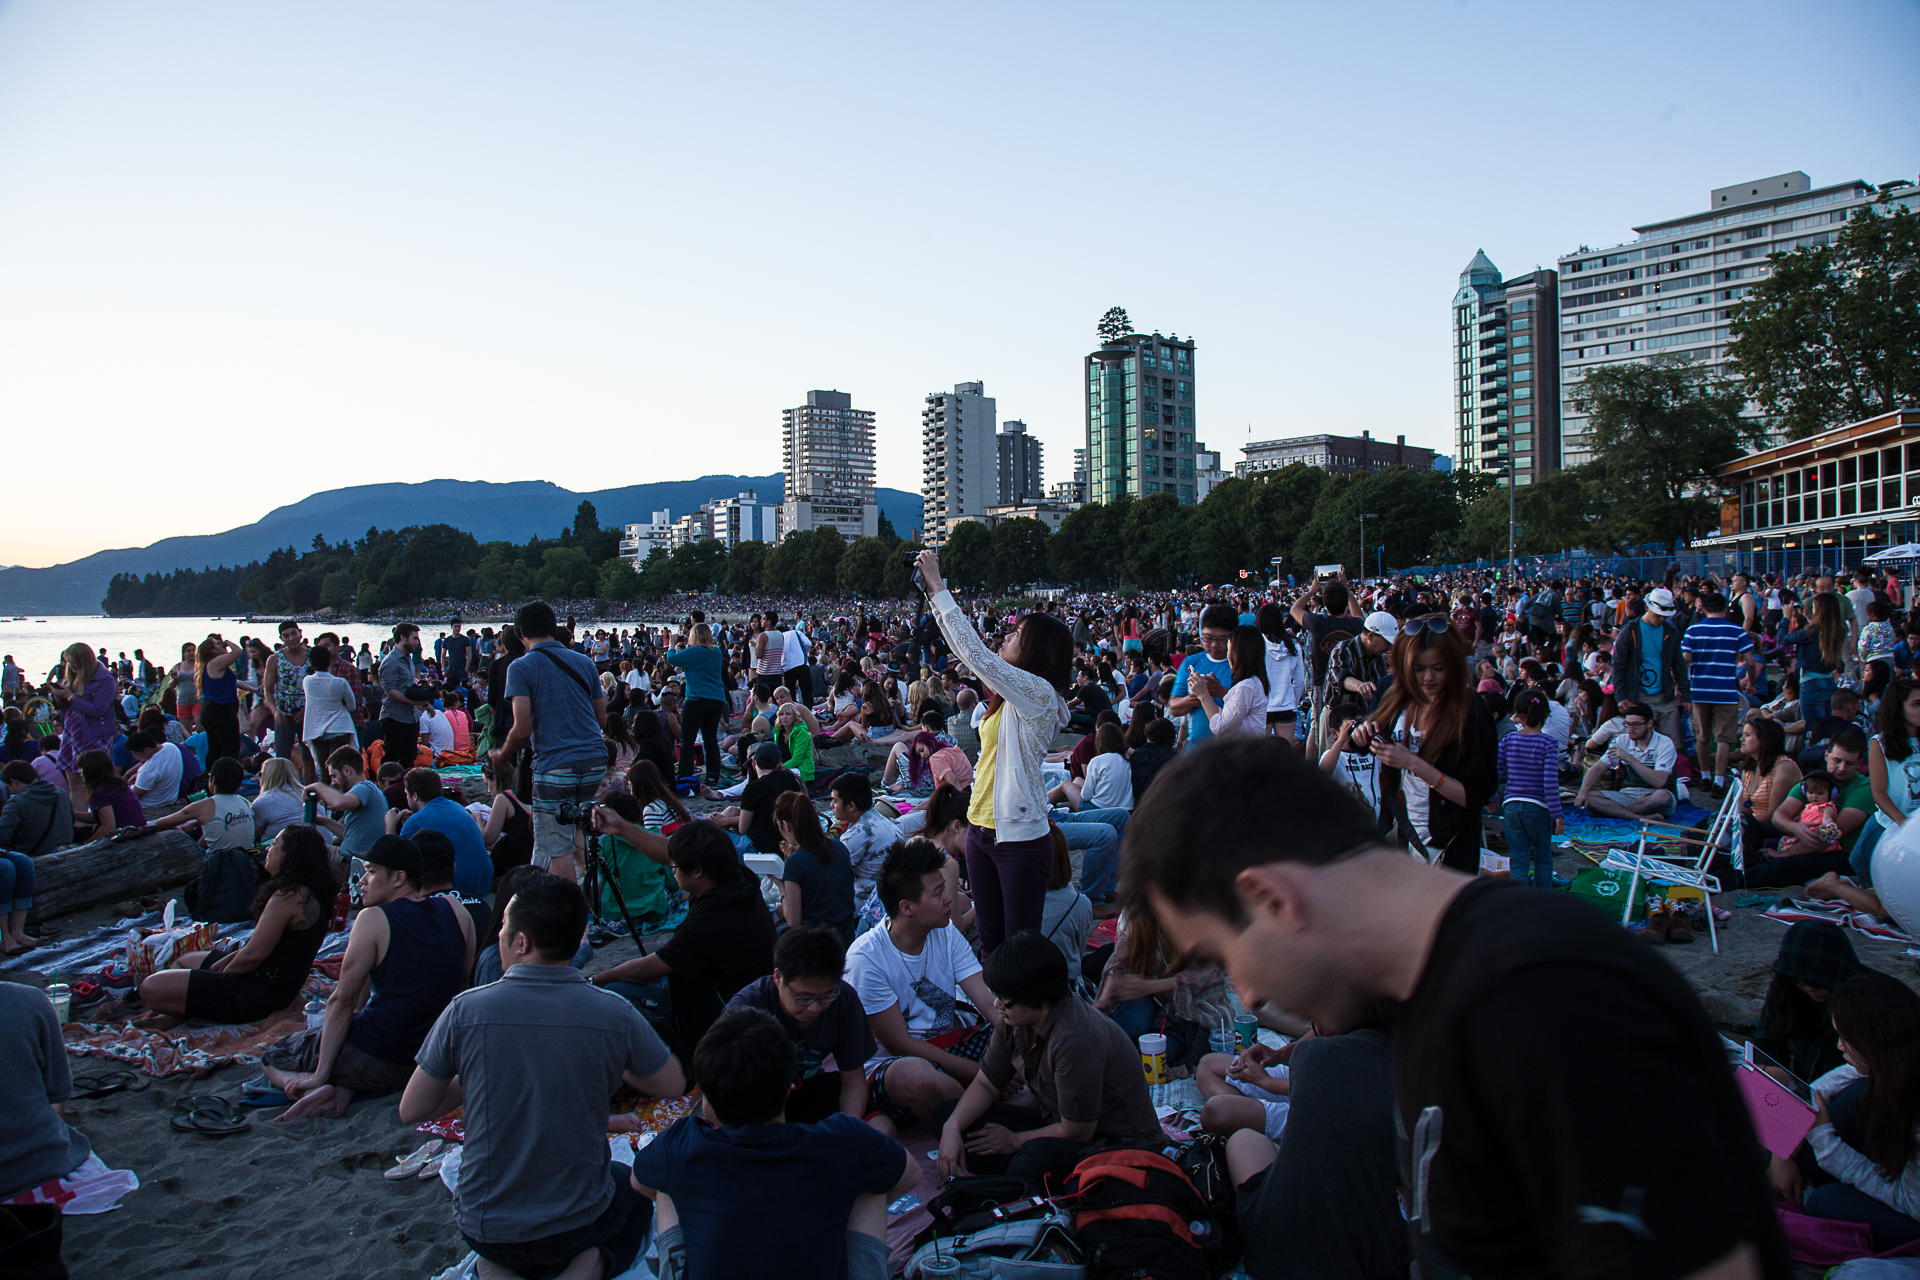 There was a big crowd at the beach for fireworks.